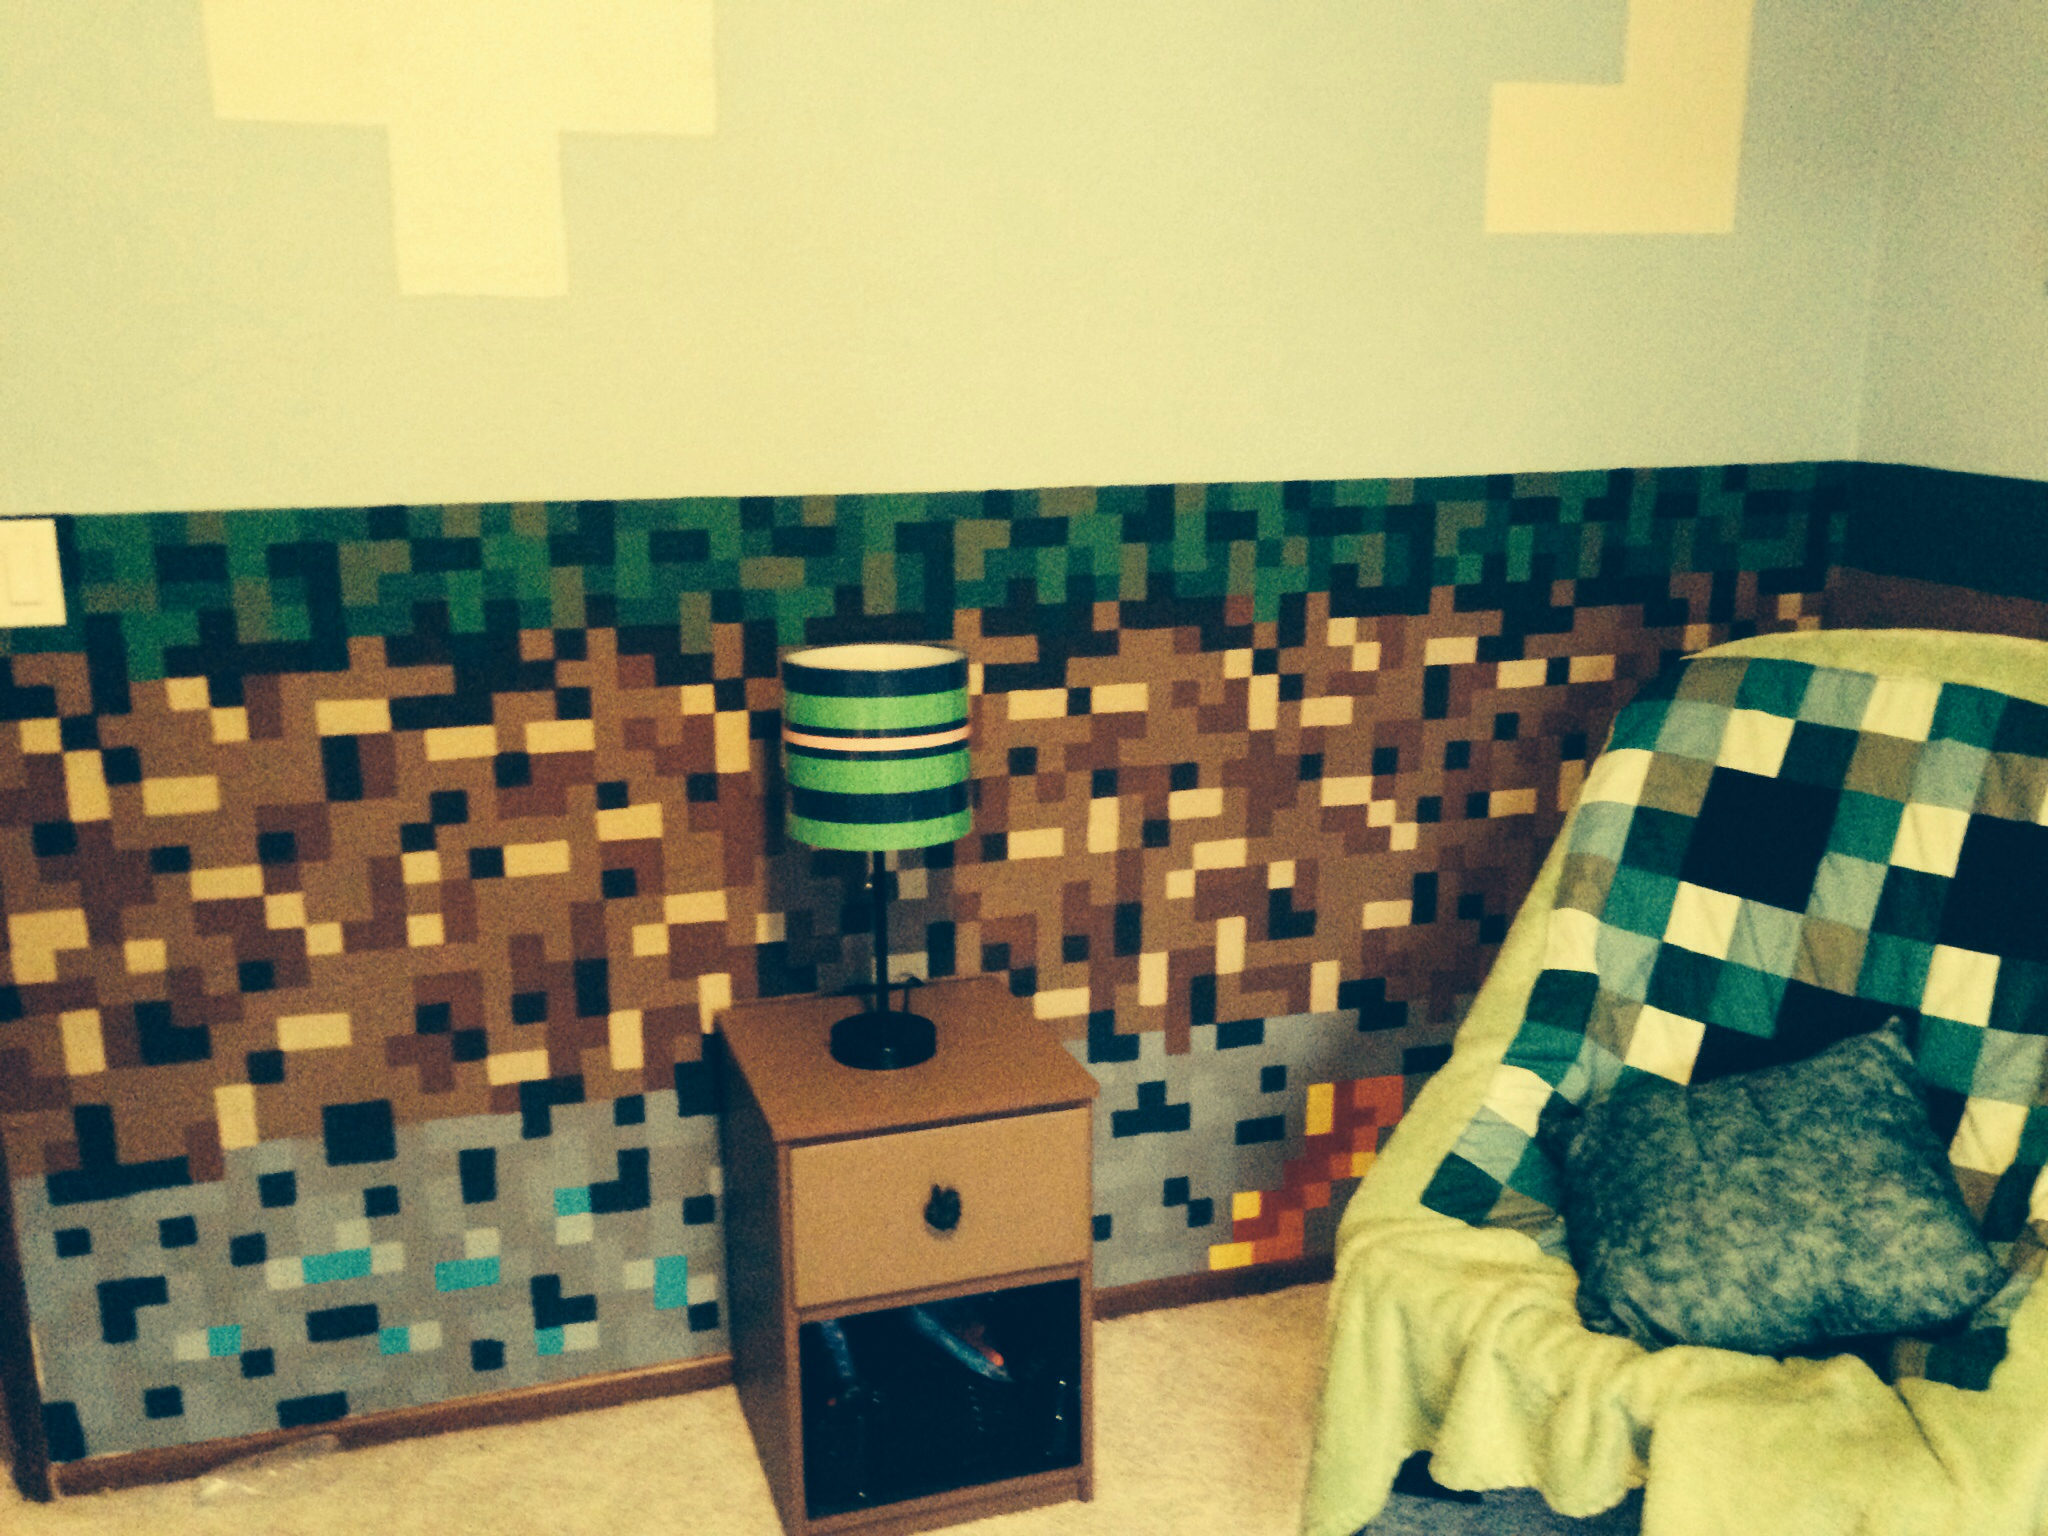 Minecraft bedroom for my 9 year old son Minecraft Pinterest 2048x1536